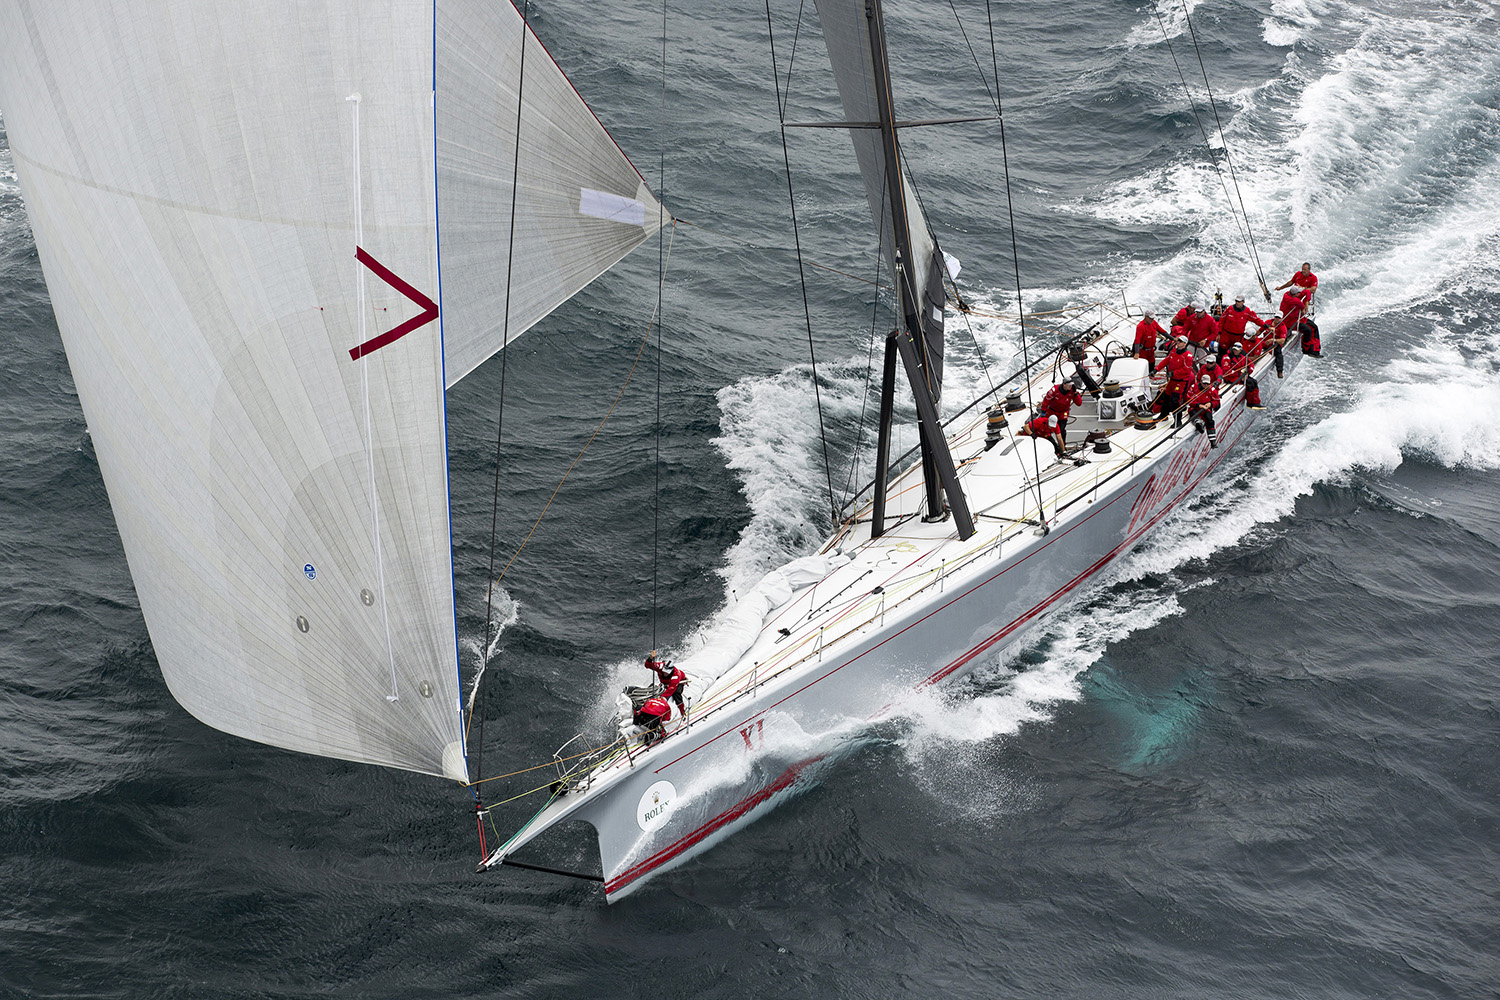 Wild Oats XI at the start of the Rolex Sydney Hobart Yacht Race. Photo Andrea Francolini.